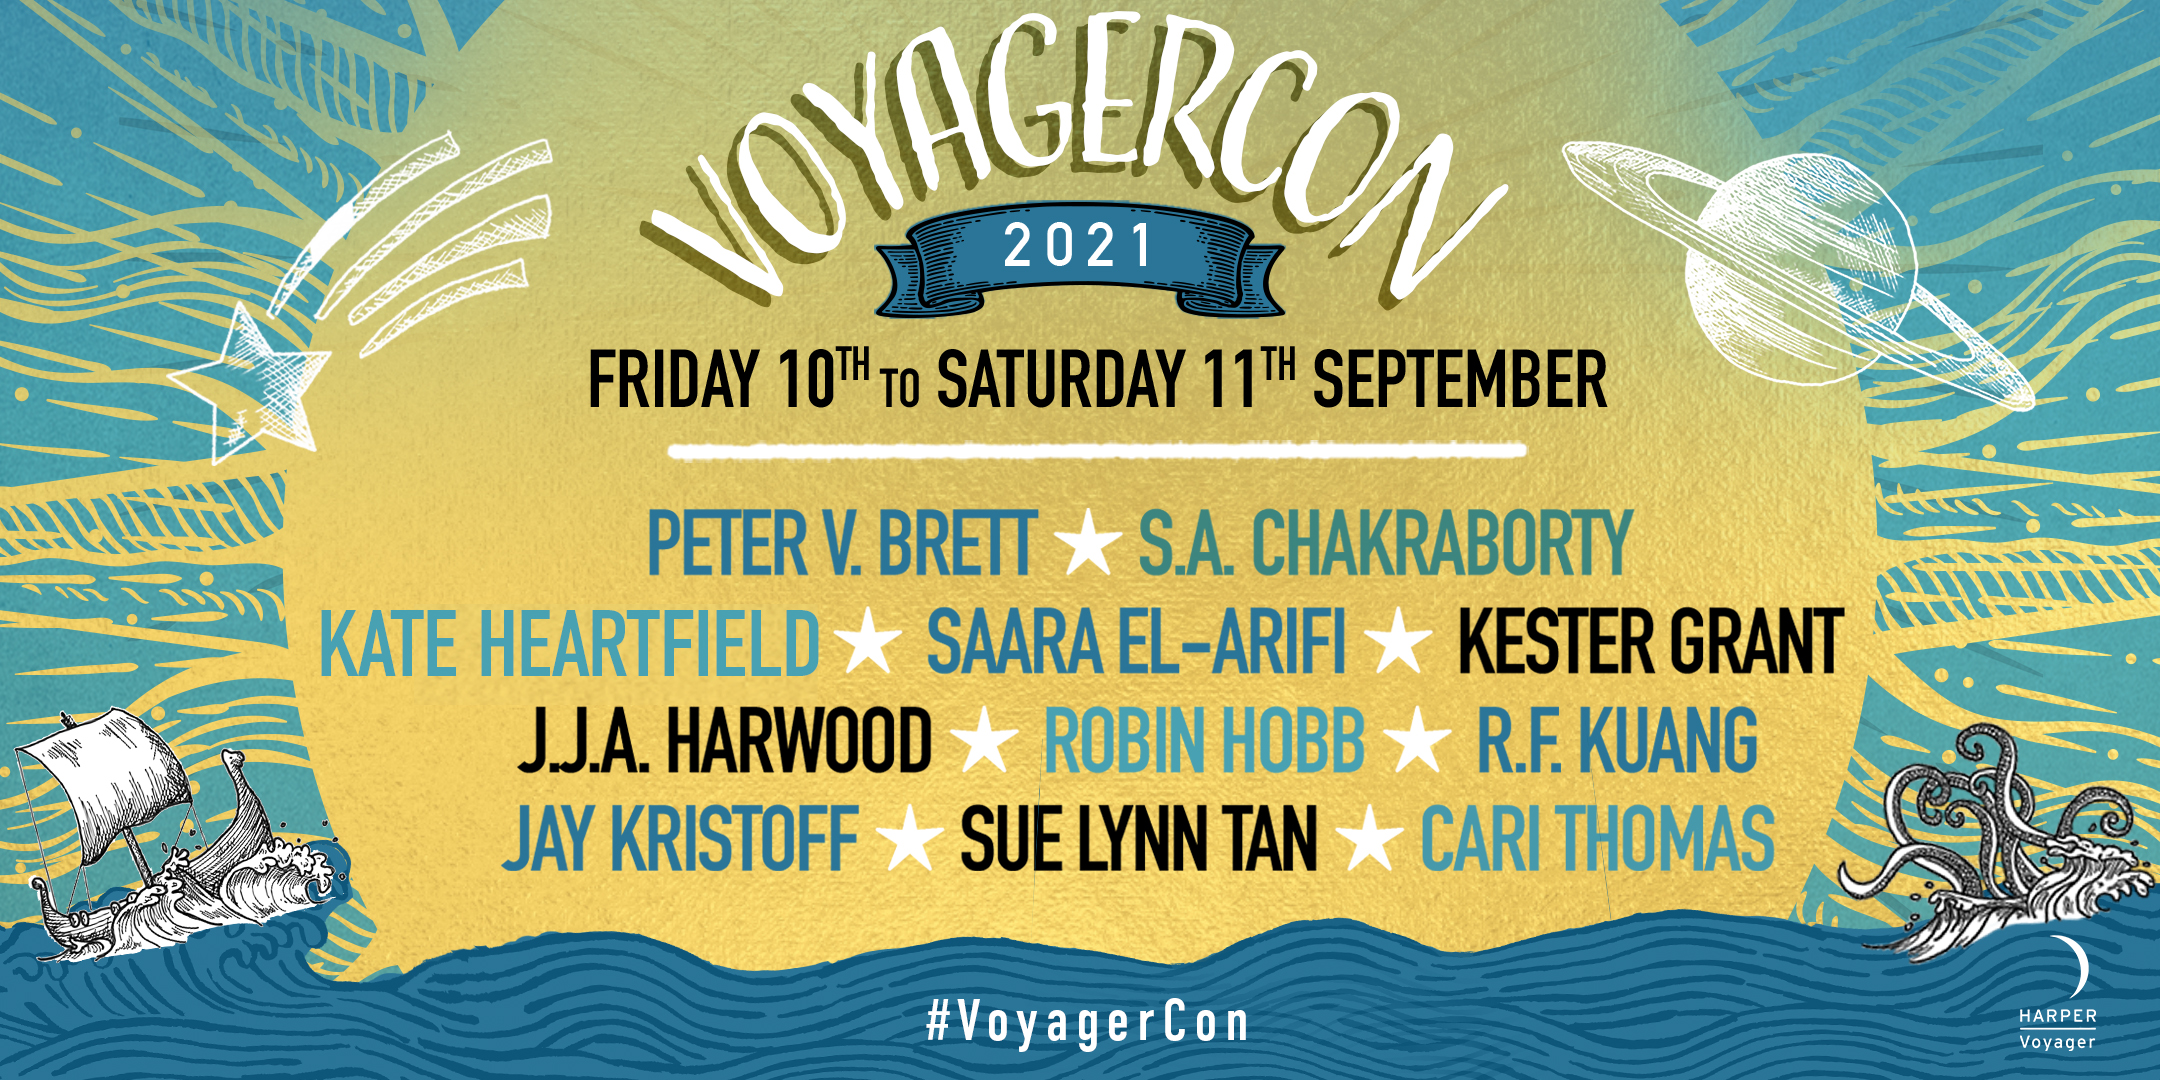 graphic detailing the dates of voyagercon which are 10th and 11 september 2021 and the author lineup: Peter V. Brett, S.A. Chakraborty, Kate Heartfield, Saara El-Arifi, Kester Grant, J.J.A. Harwood, R.F. Kuang, Jay Kristoff, Sue Lynn Tan and Cari Thomas.